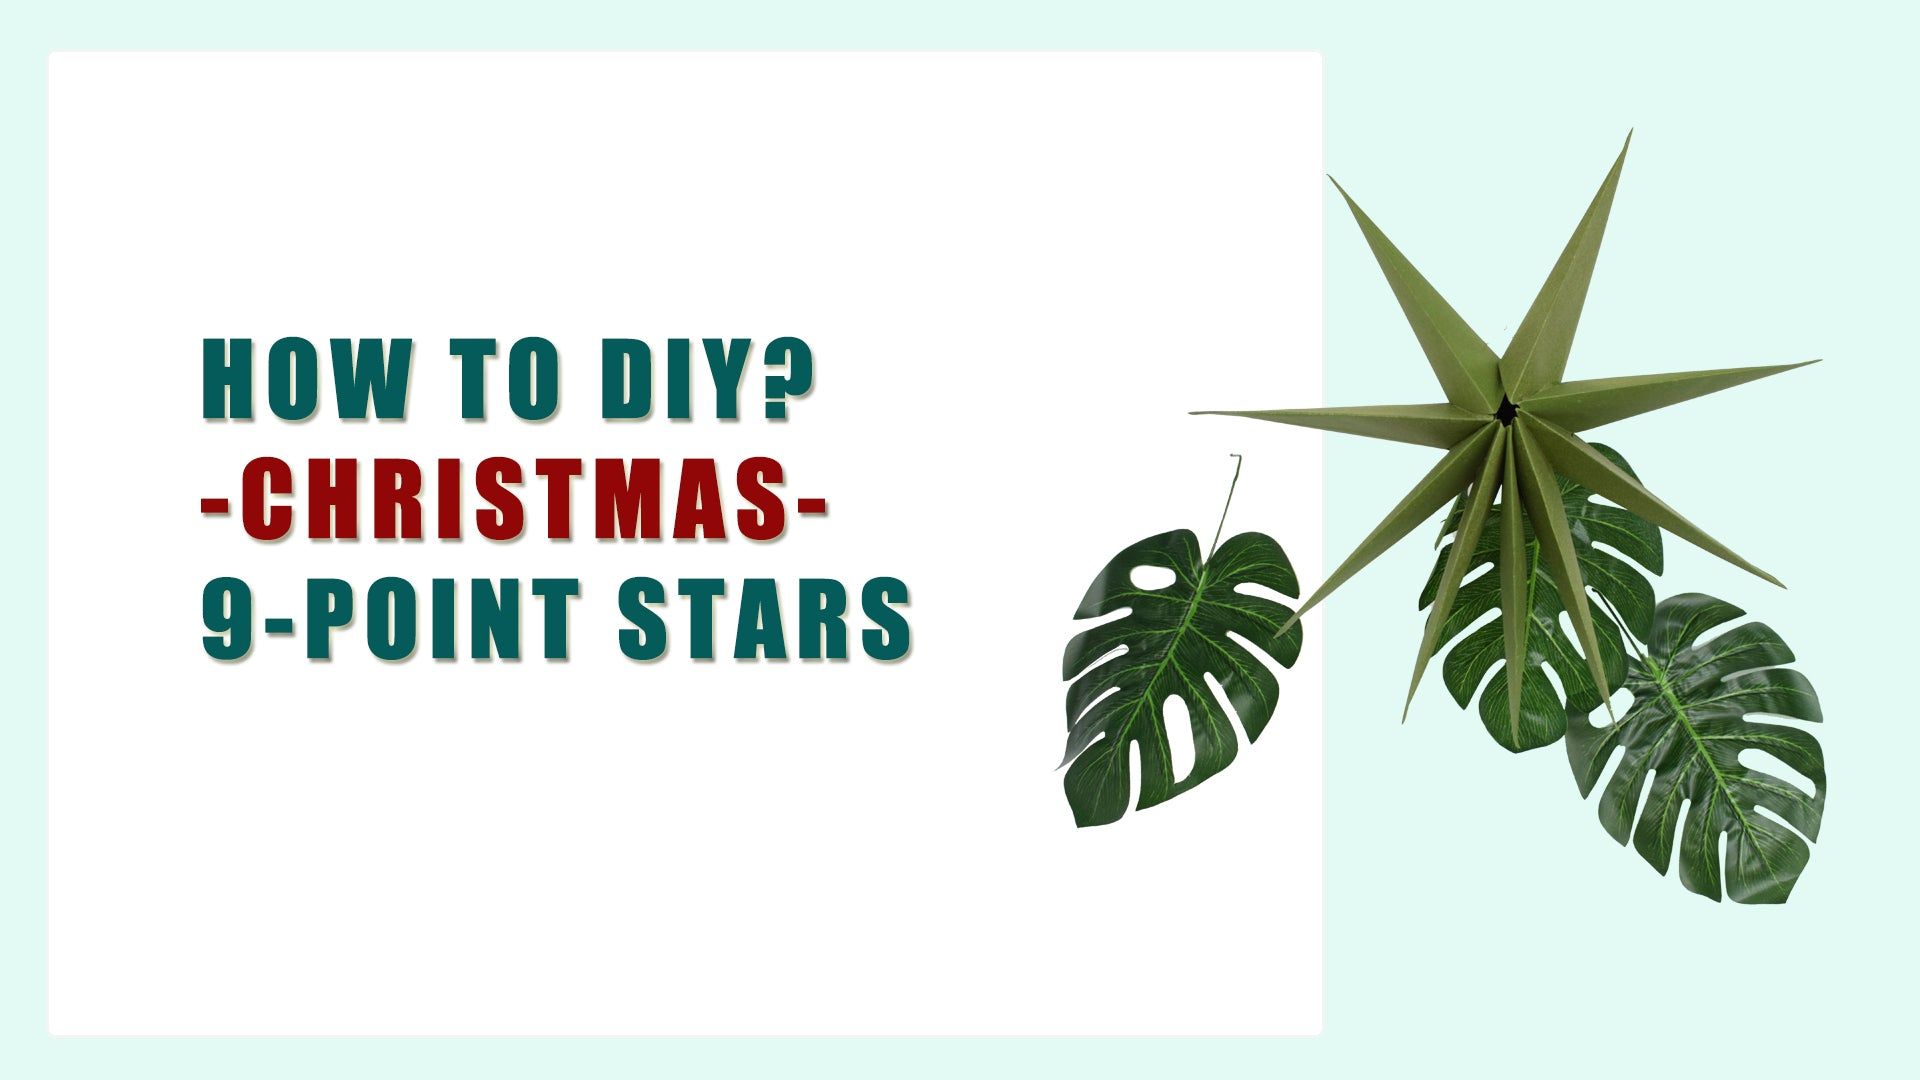 How To Make Paper Star Craft for Christmas Home Decoration (DIY)